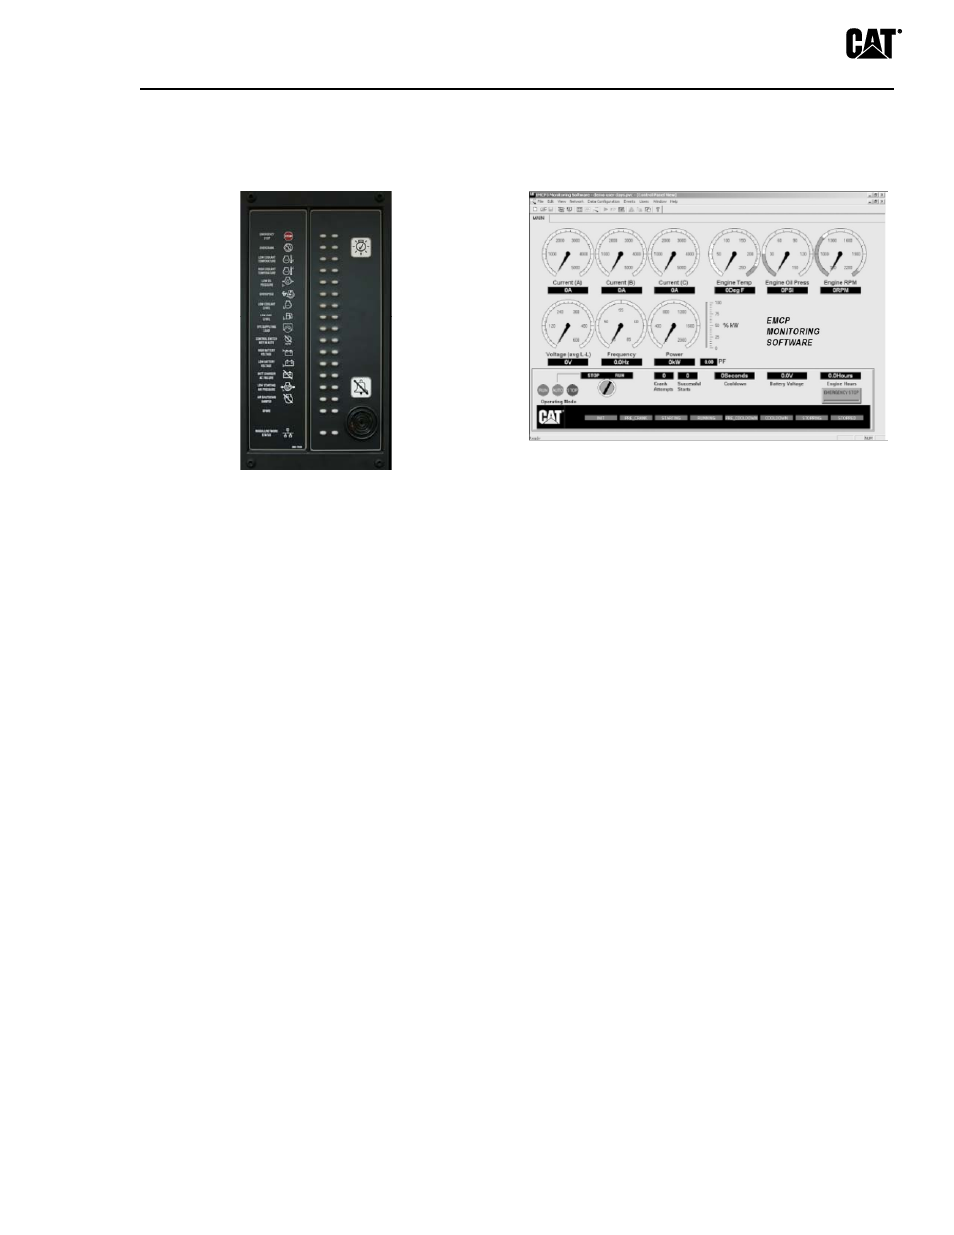 Optional Modules  Emcp 4 2 Generator Set Controller